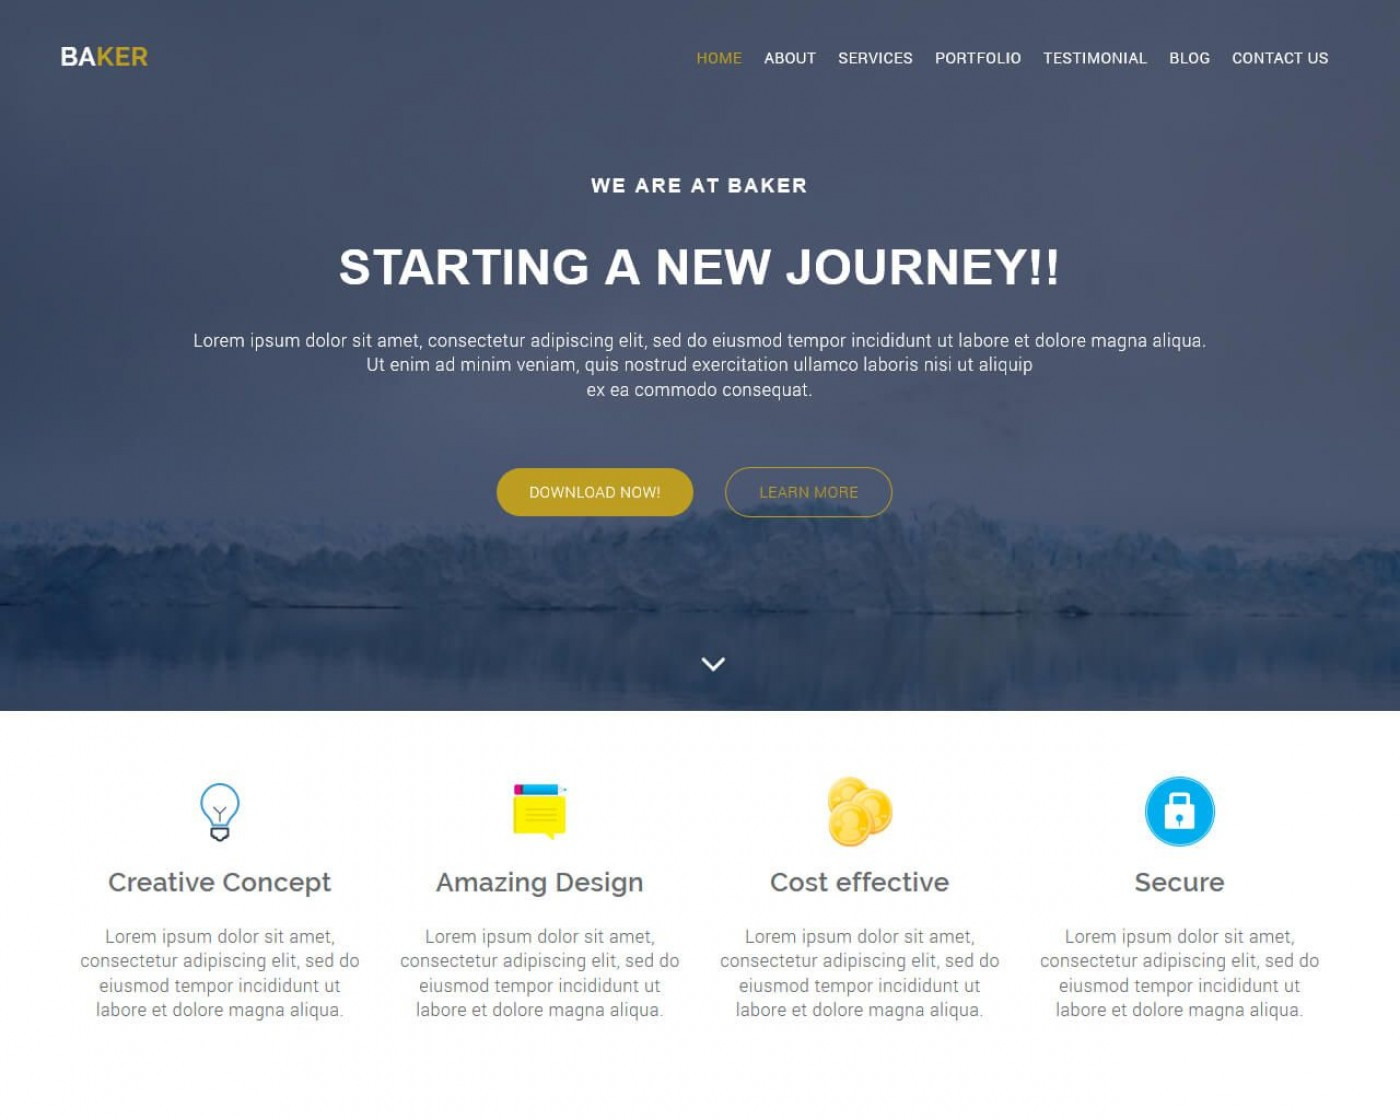 001 Fascinating Free Bootstrap Website Template High Resolution  2020 Responsive Download For Busines Education1400